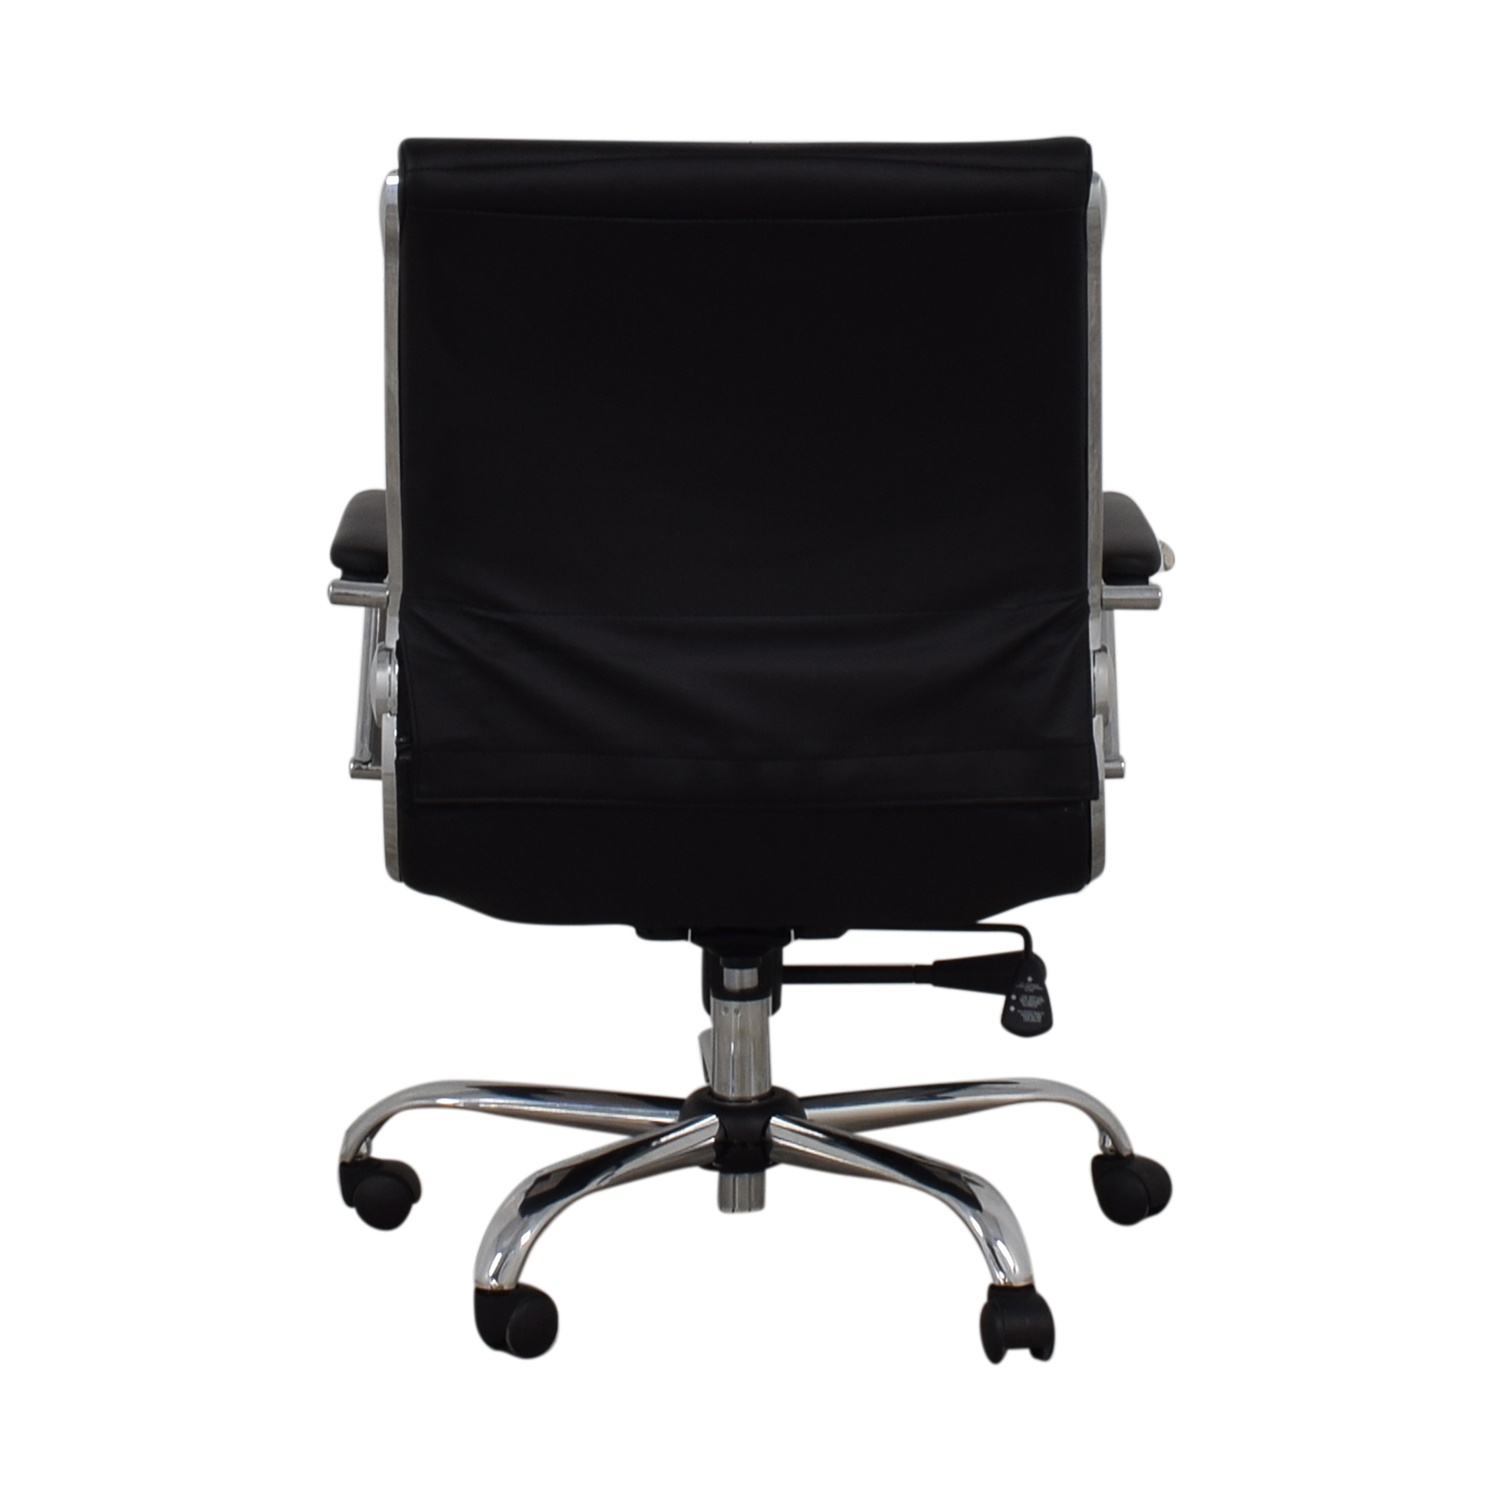 Office Chairs At Staples 75 Off Staples Staples Adjustable Black Office Chair Chairs